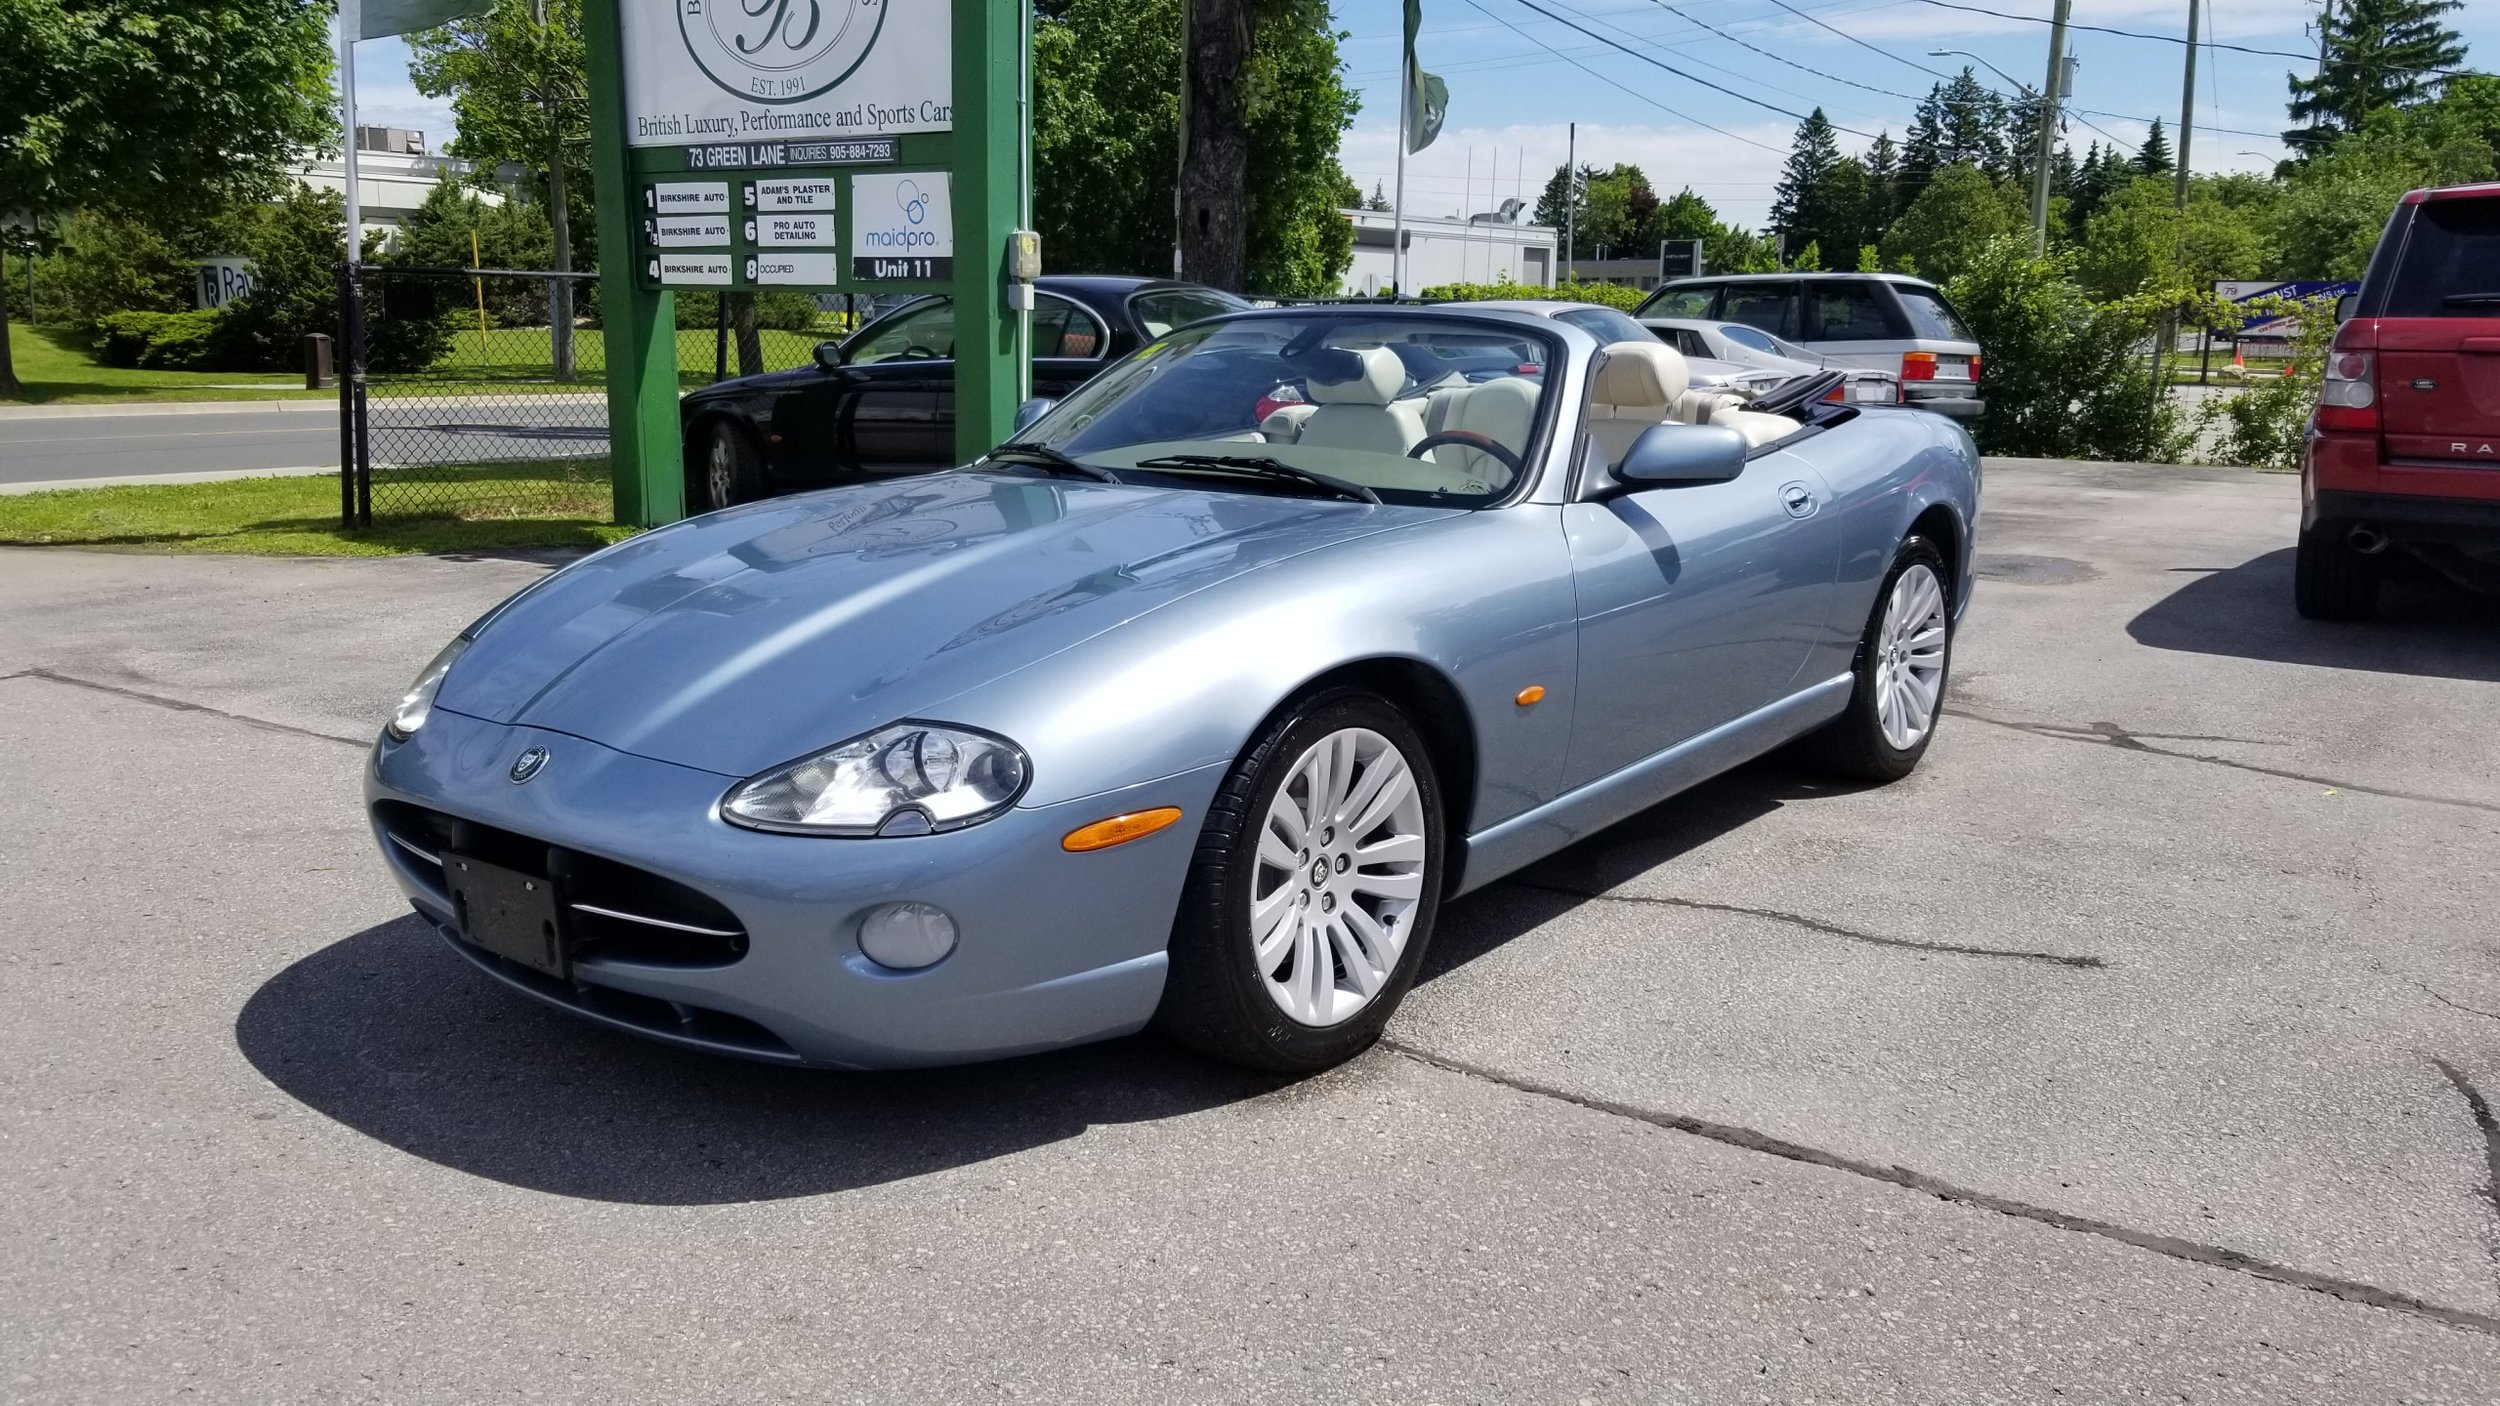 2005 Jaguar XK8 Convertible - SOLD - Silky smooth V8 with only 67,000 miles!